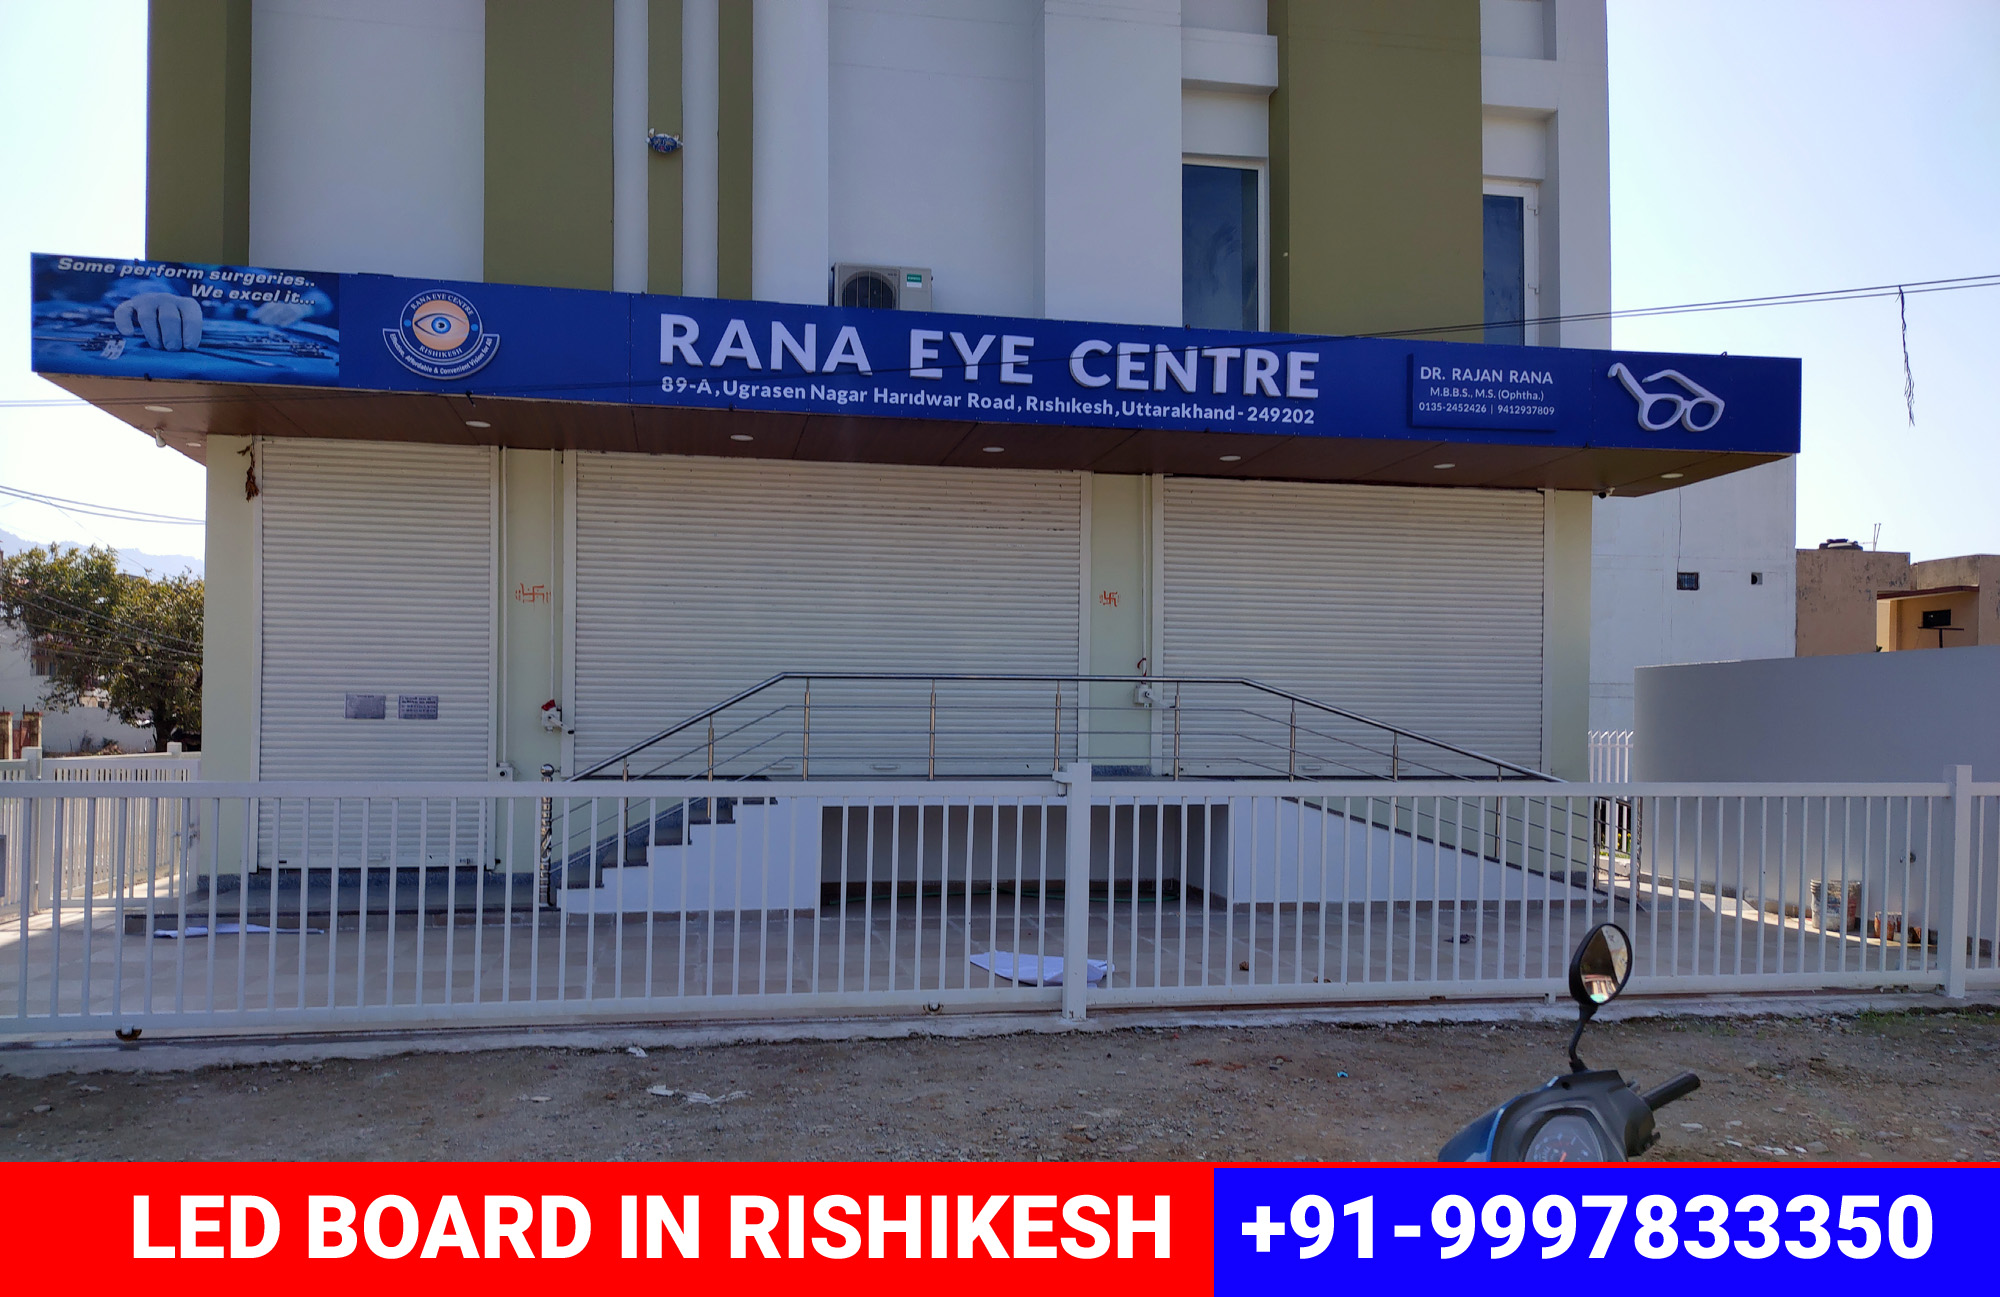 LED Board designed and installed in Rishikesh's famous clinic - Rana Eye Centre.